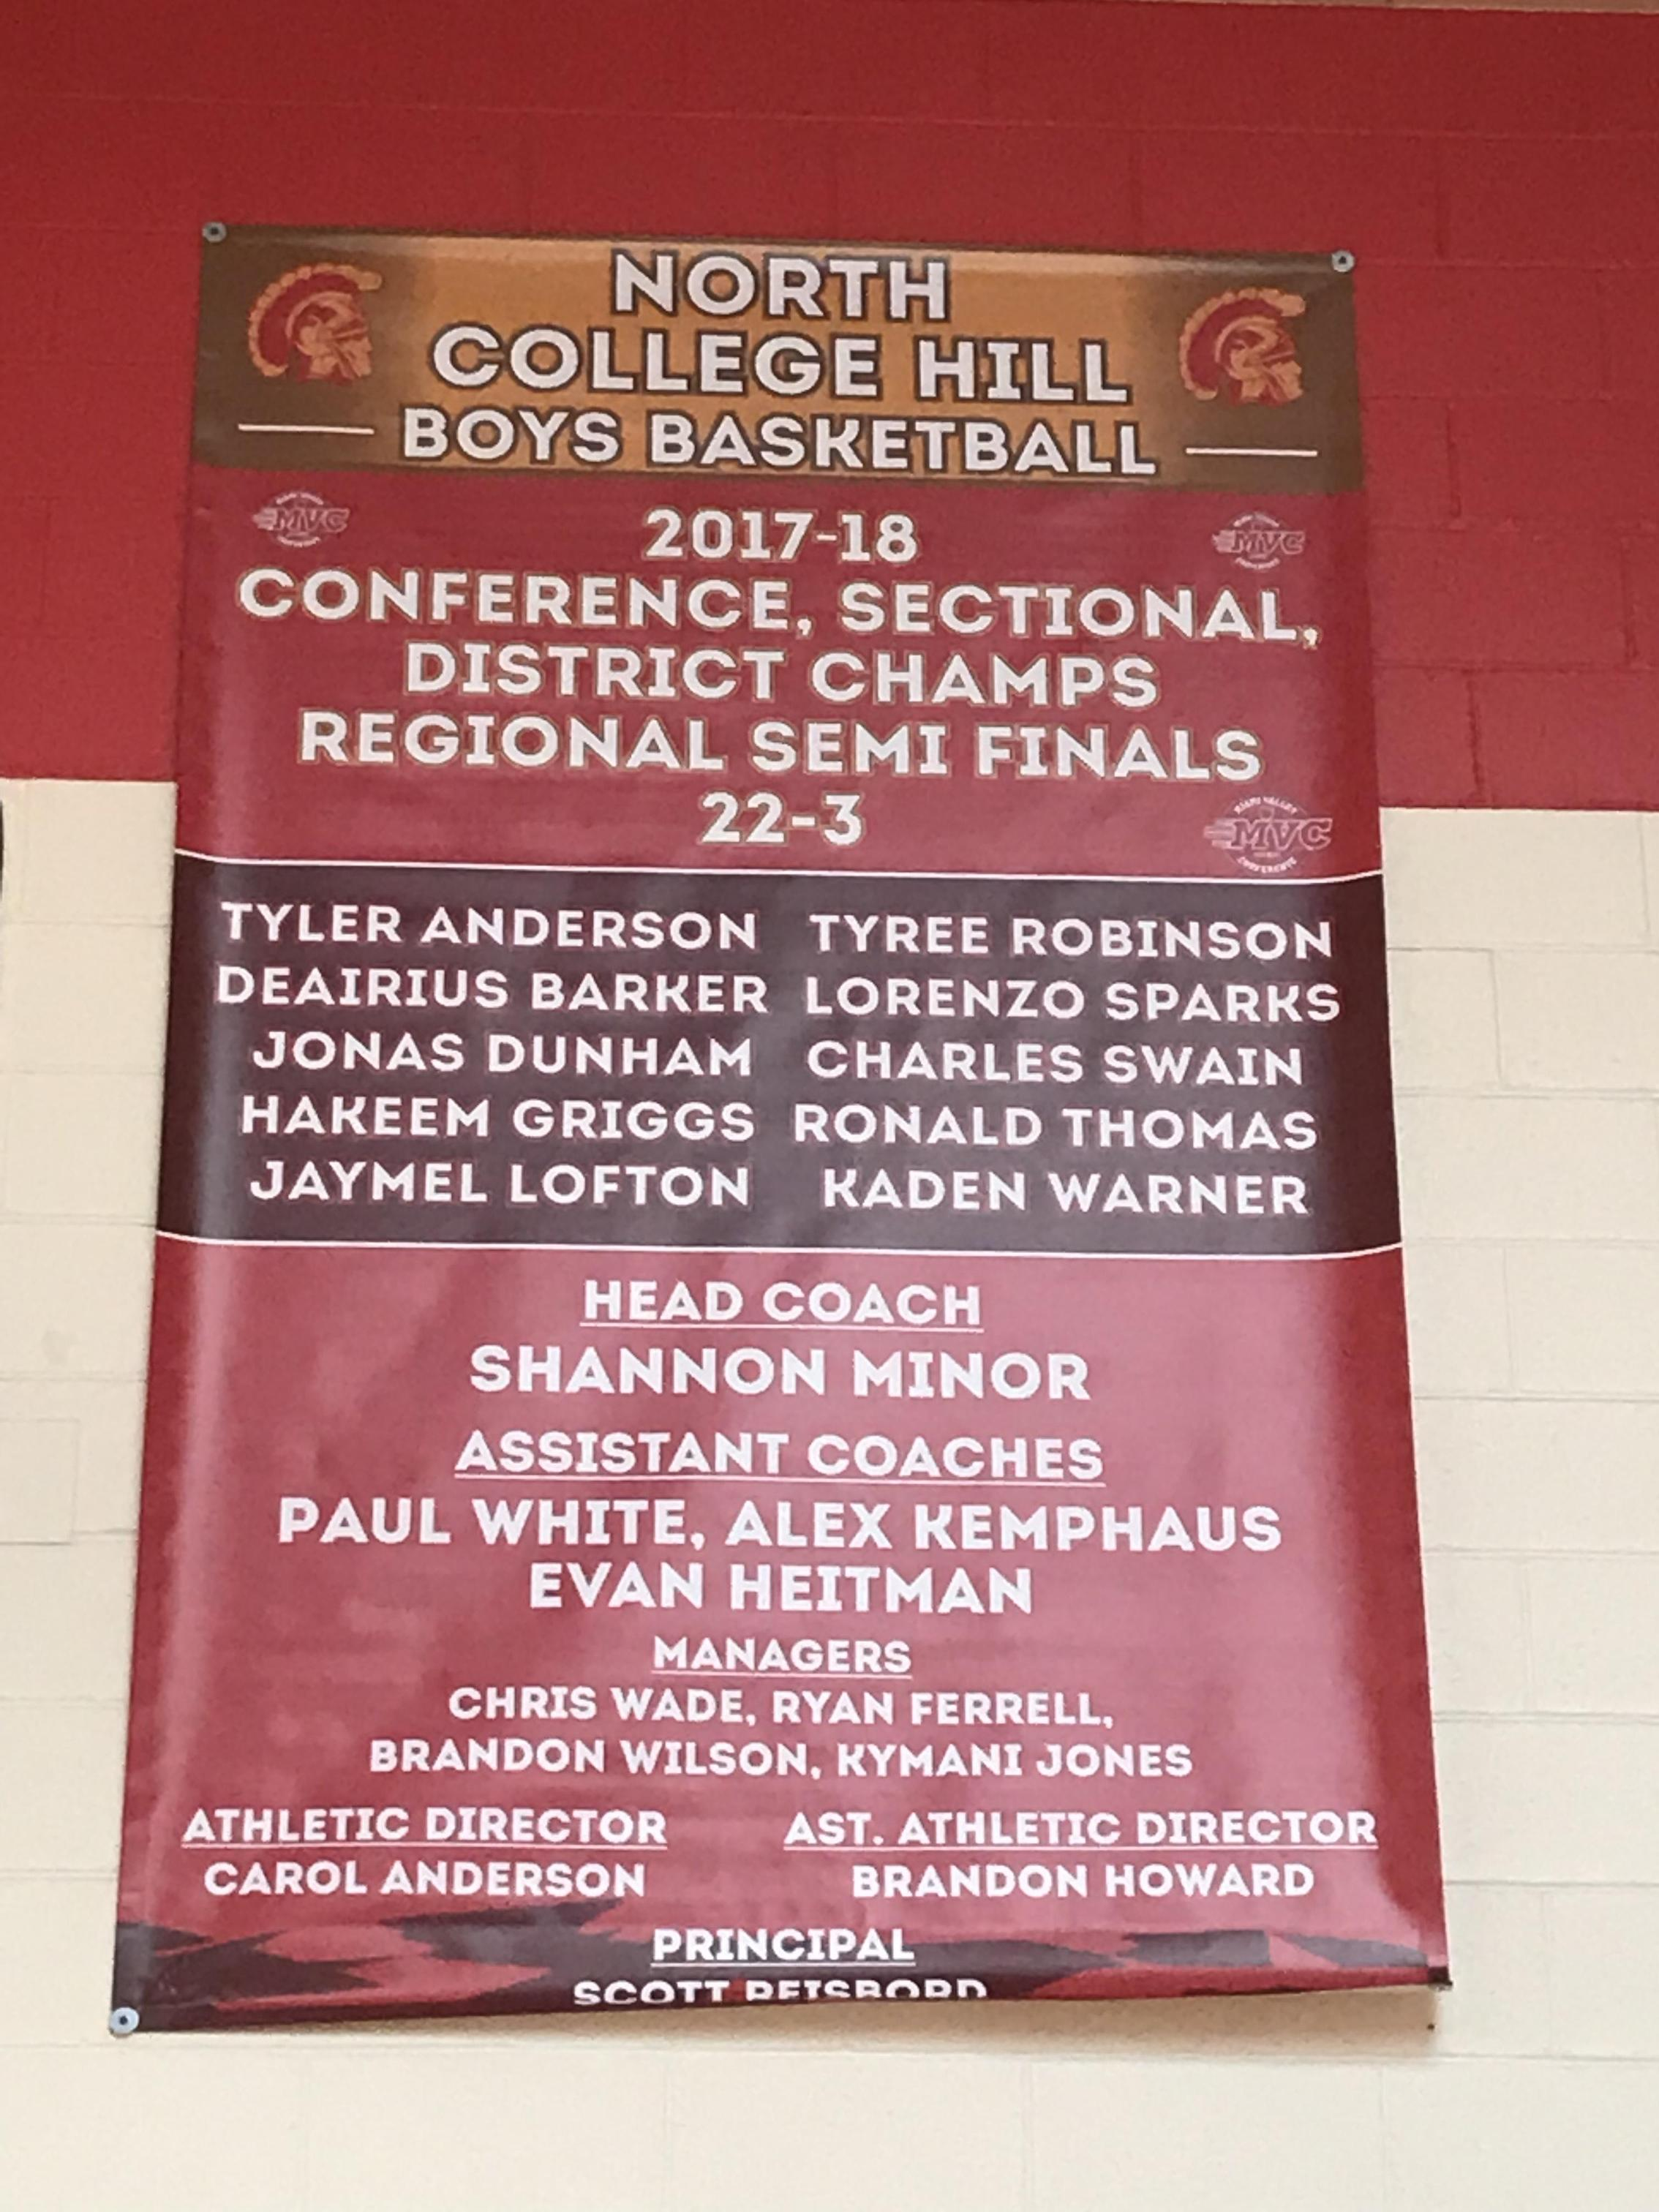 North College Hill new basketball banner